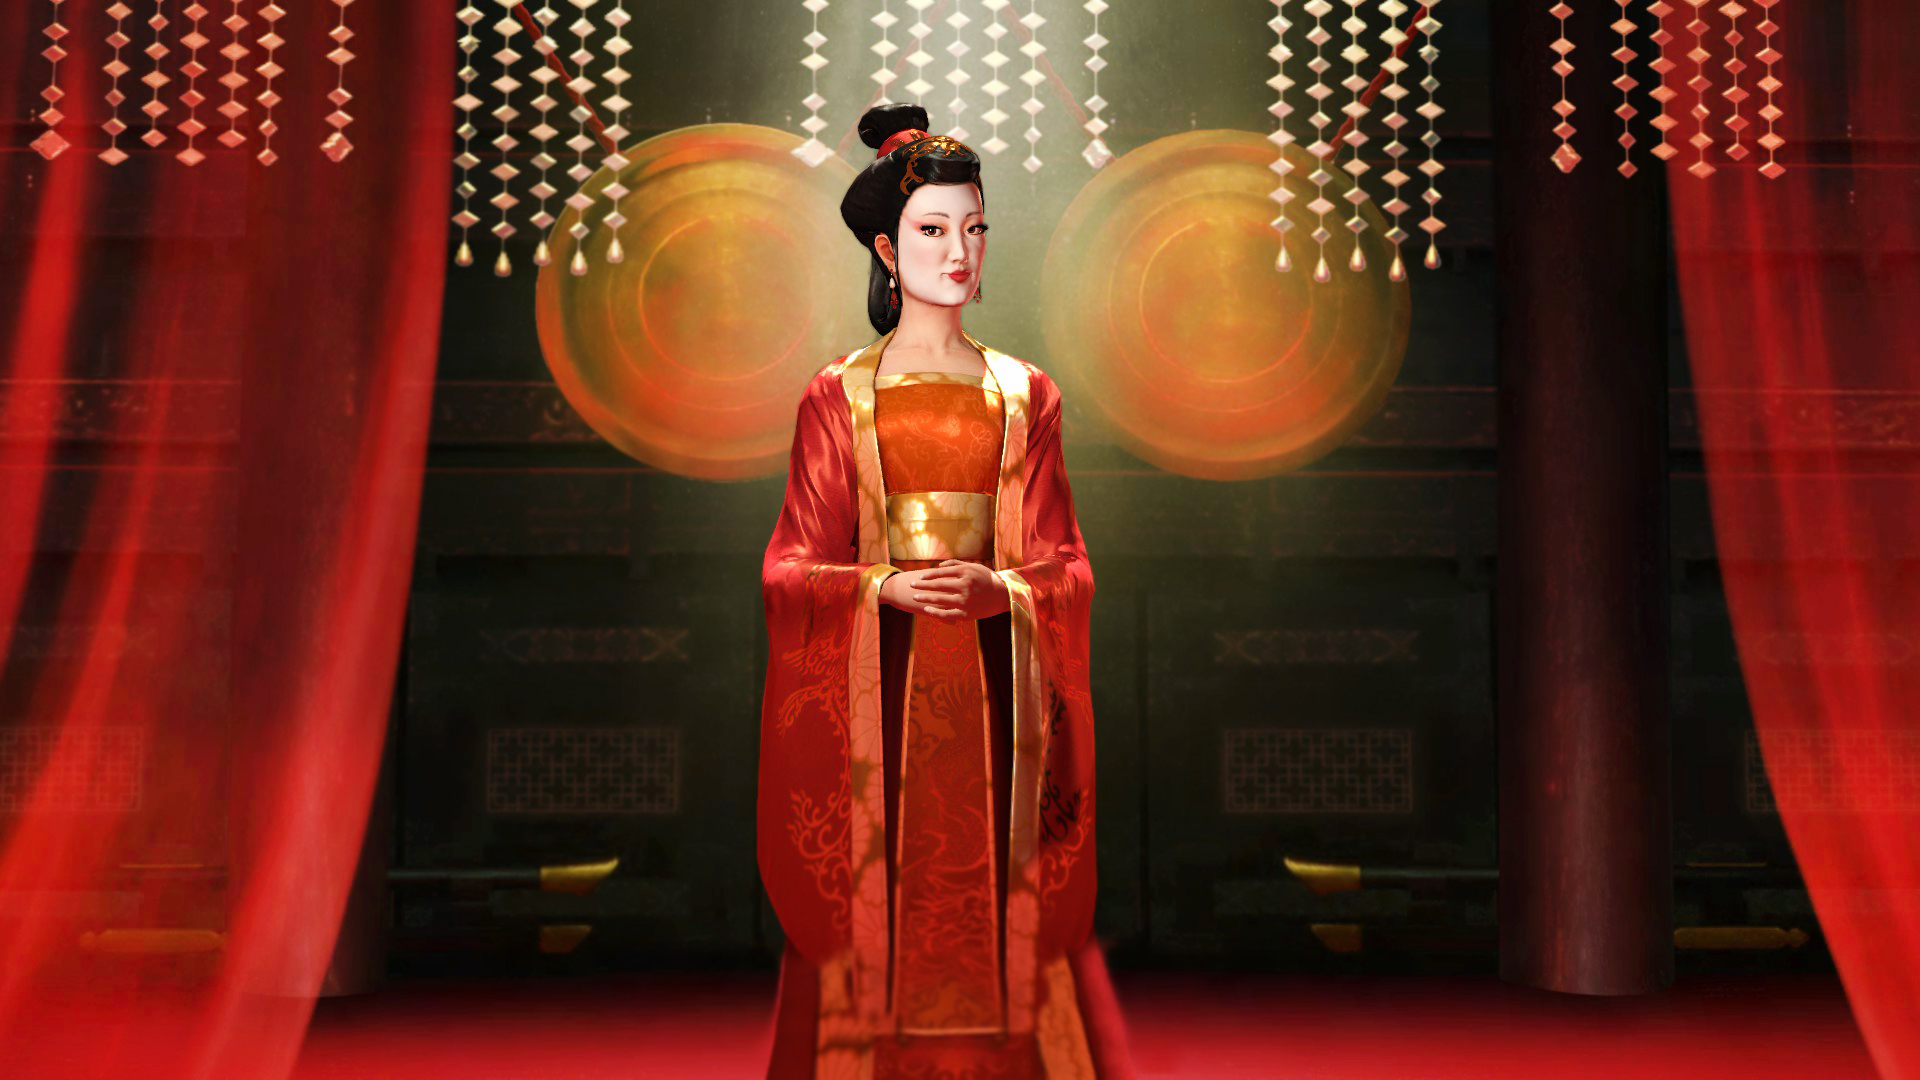 Wu Zetian, The Only Empress of China Facts